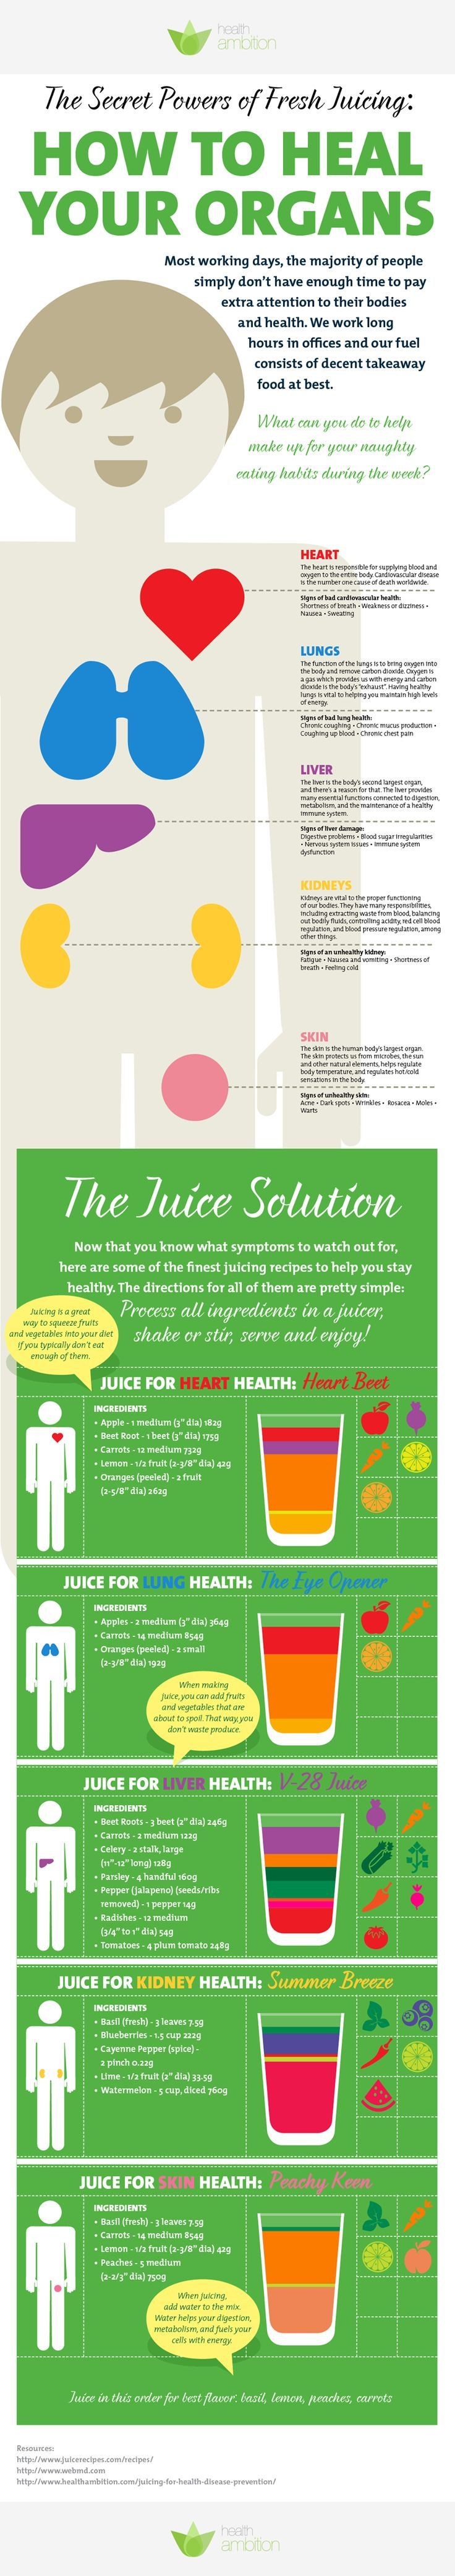 How To Help Your Organs Heal With Freshly Made Juice  Read more at http://www.the-open-mind.com/how-to-help-your-organs-heal-with-freshly-made-juice/#P9kFPrv8ETCV7vIk.99